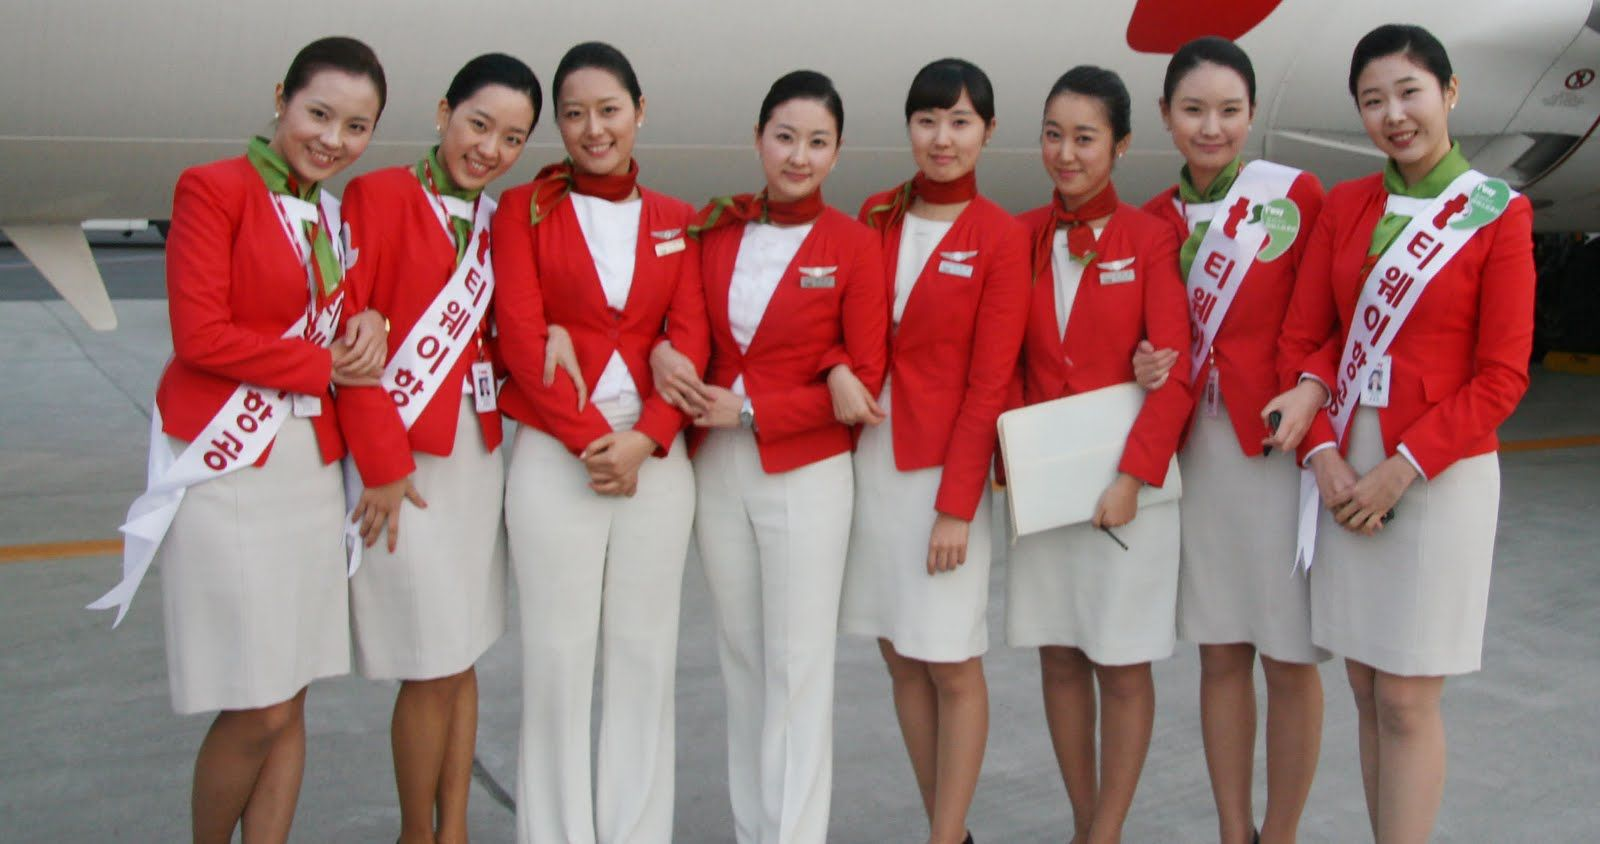 cover letter for flight attendant position%0A T u    way Airlines Korea